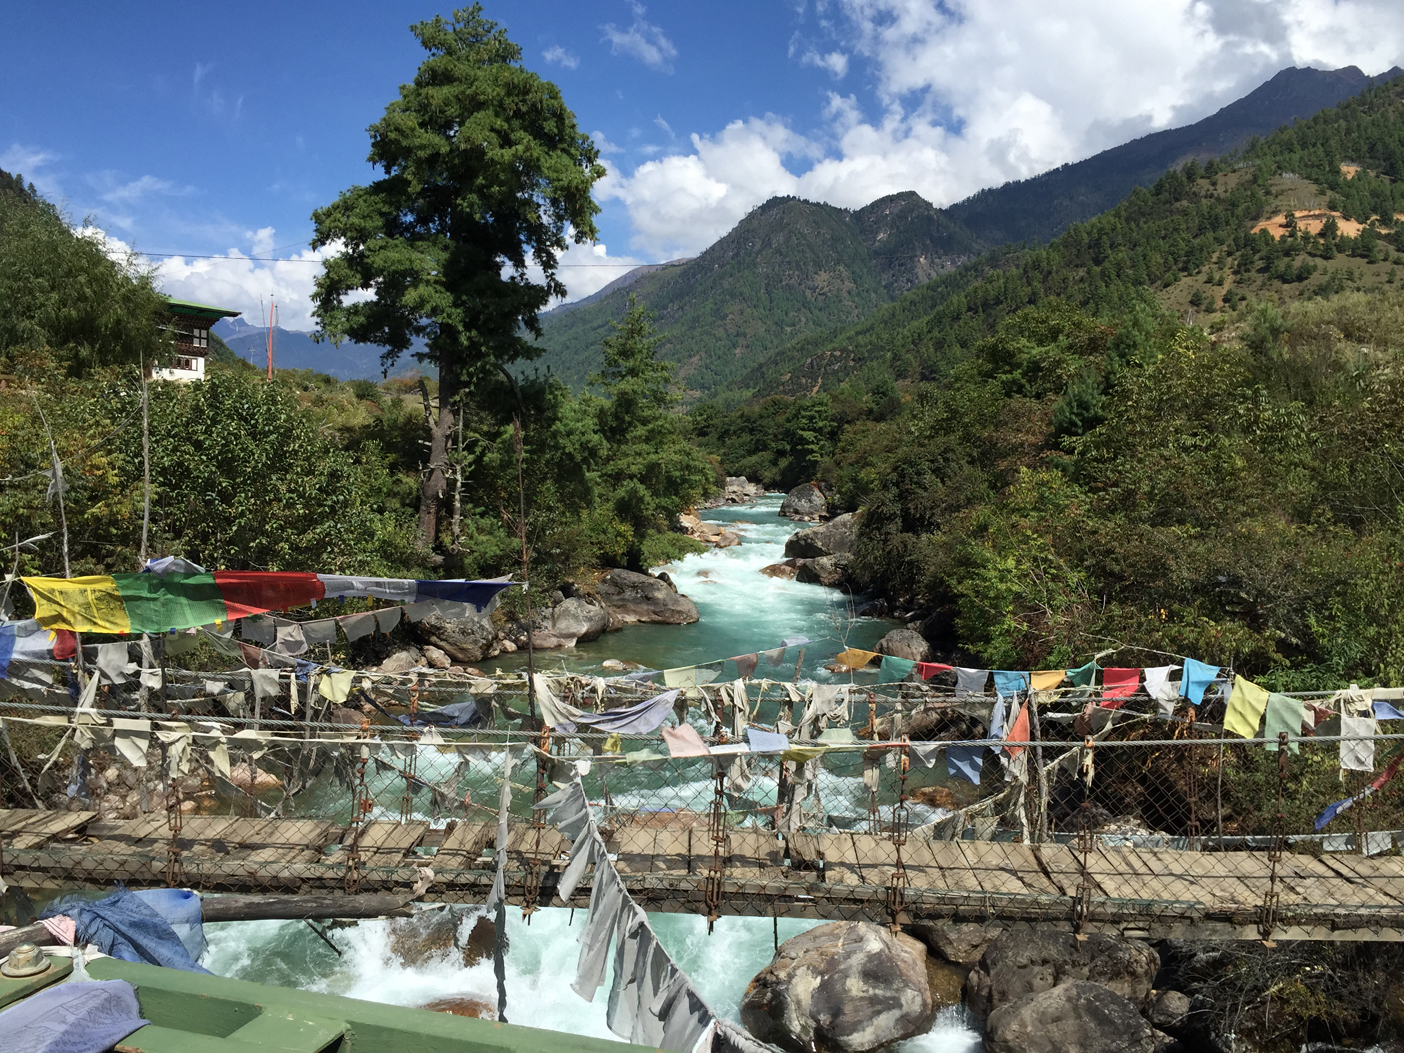 Looking upstream over the Paro River